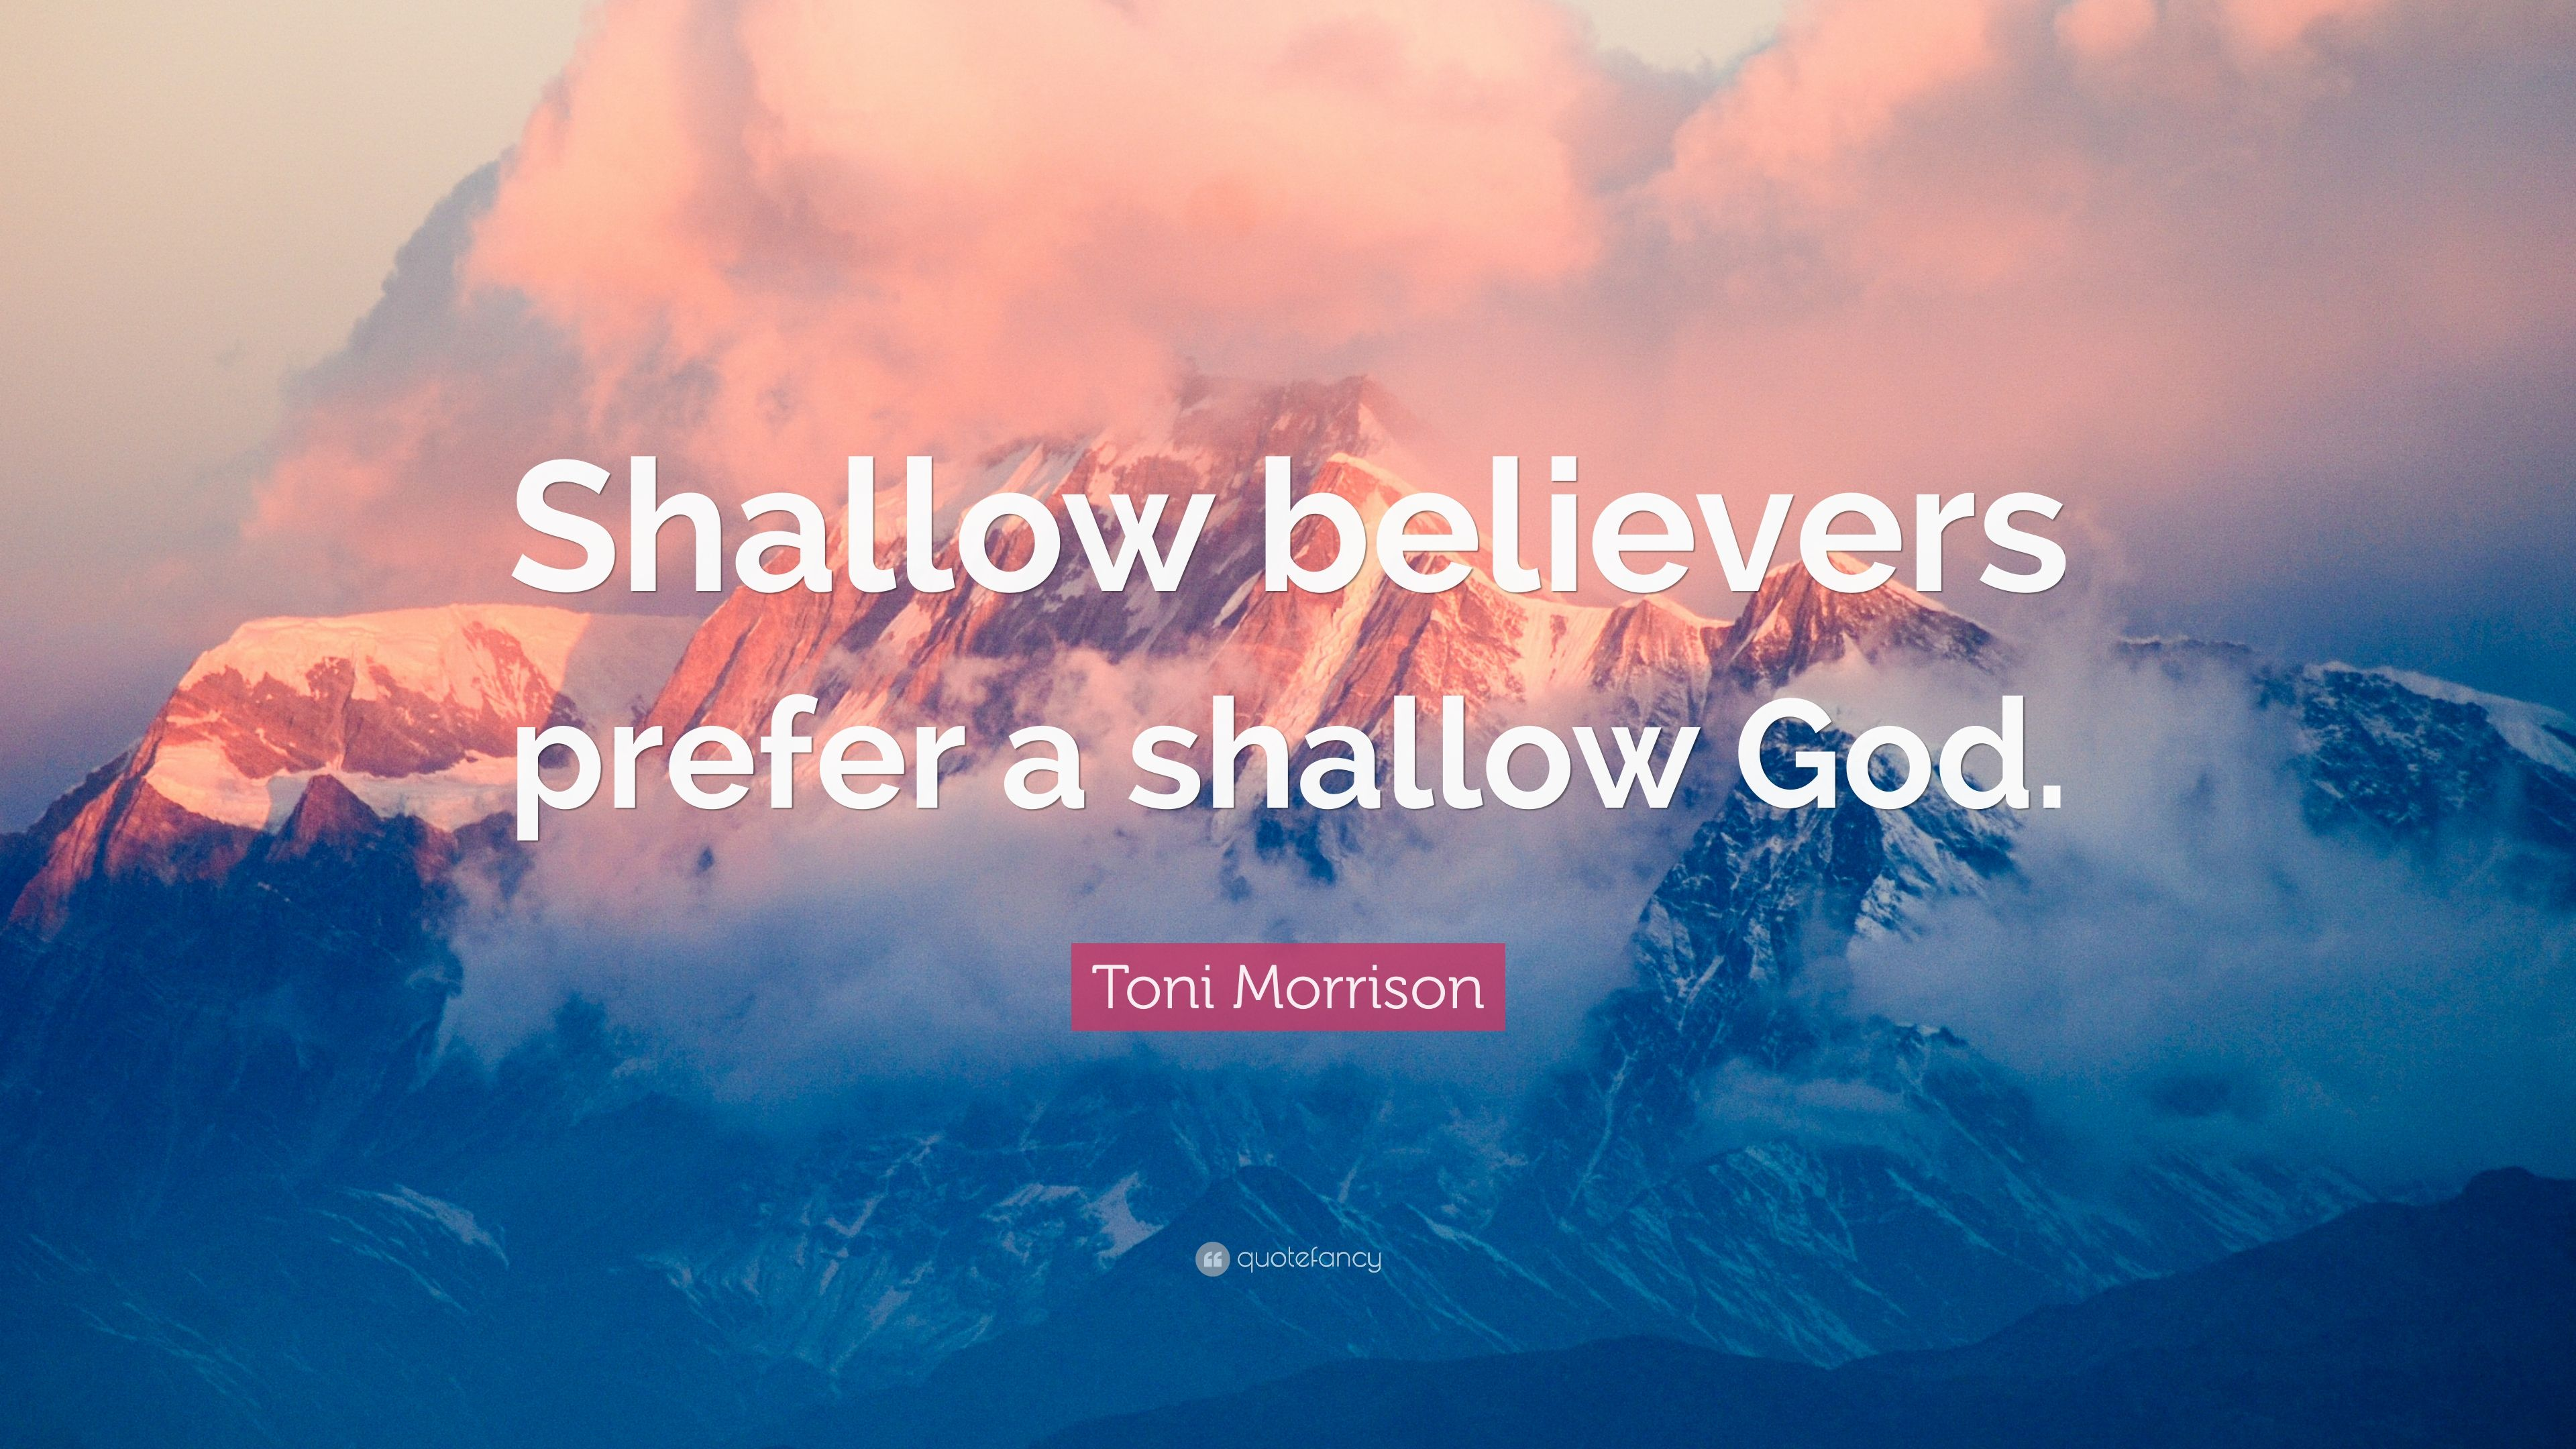 toni morrison quote   u201cshallow believers prefer a shallow